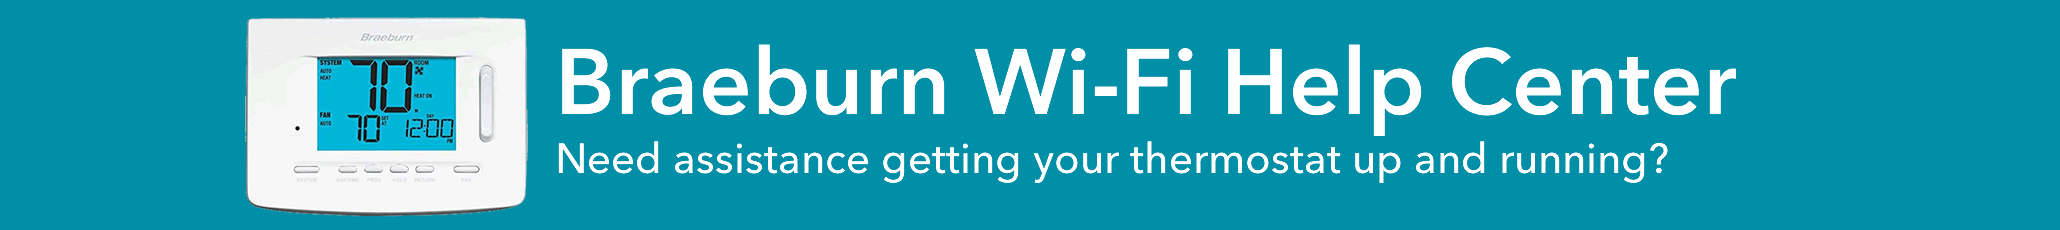 Braeburn WiFi Help Center: Need assistance getting your thermostat up and running?